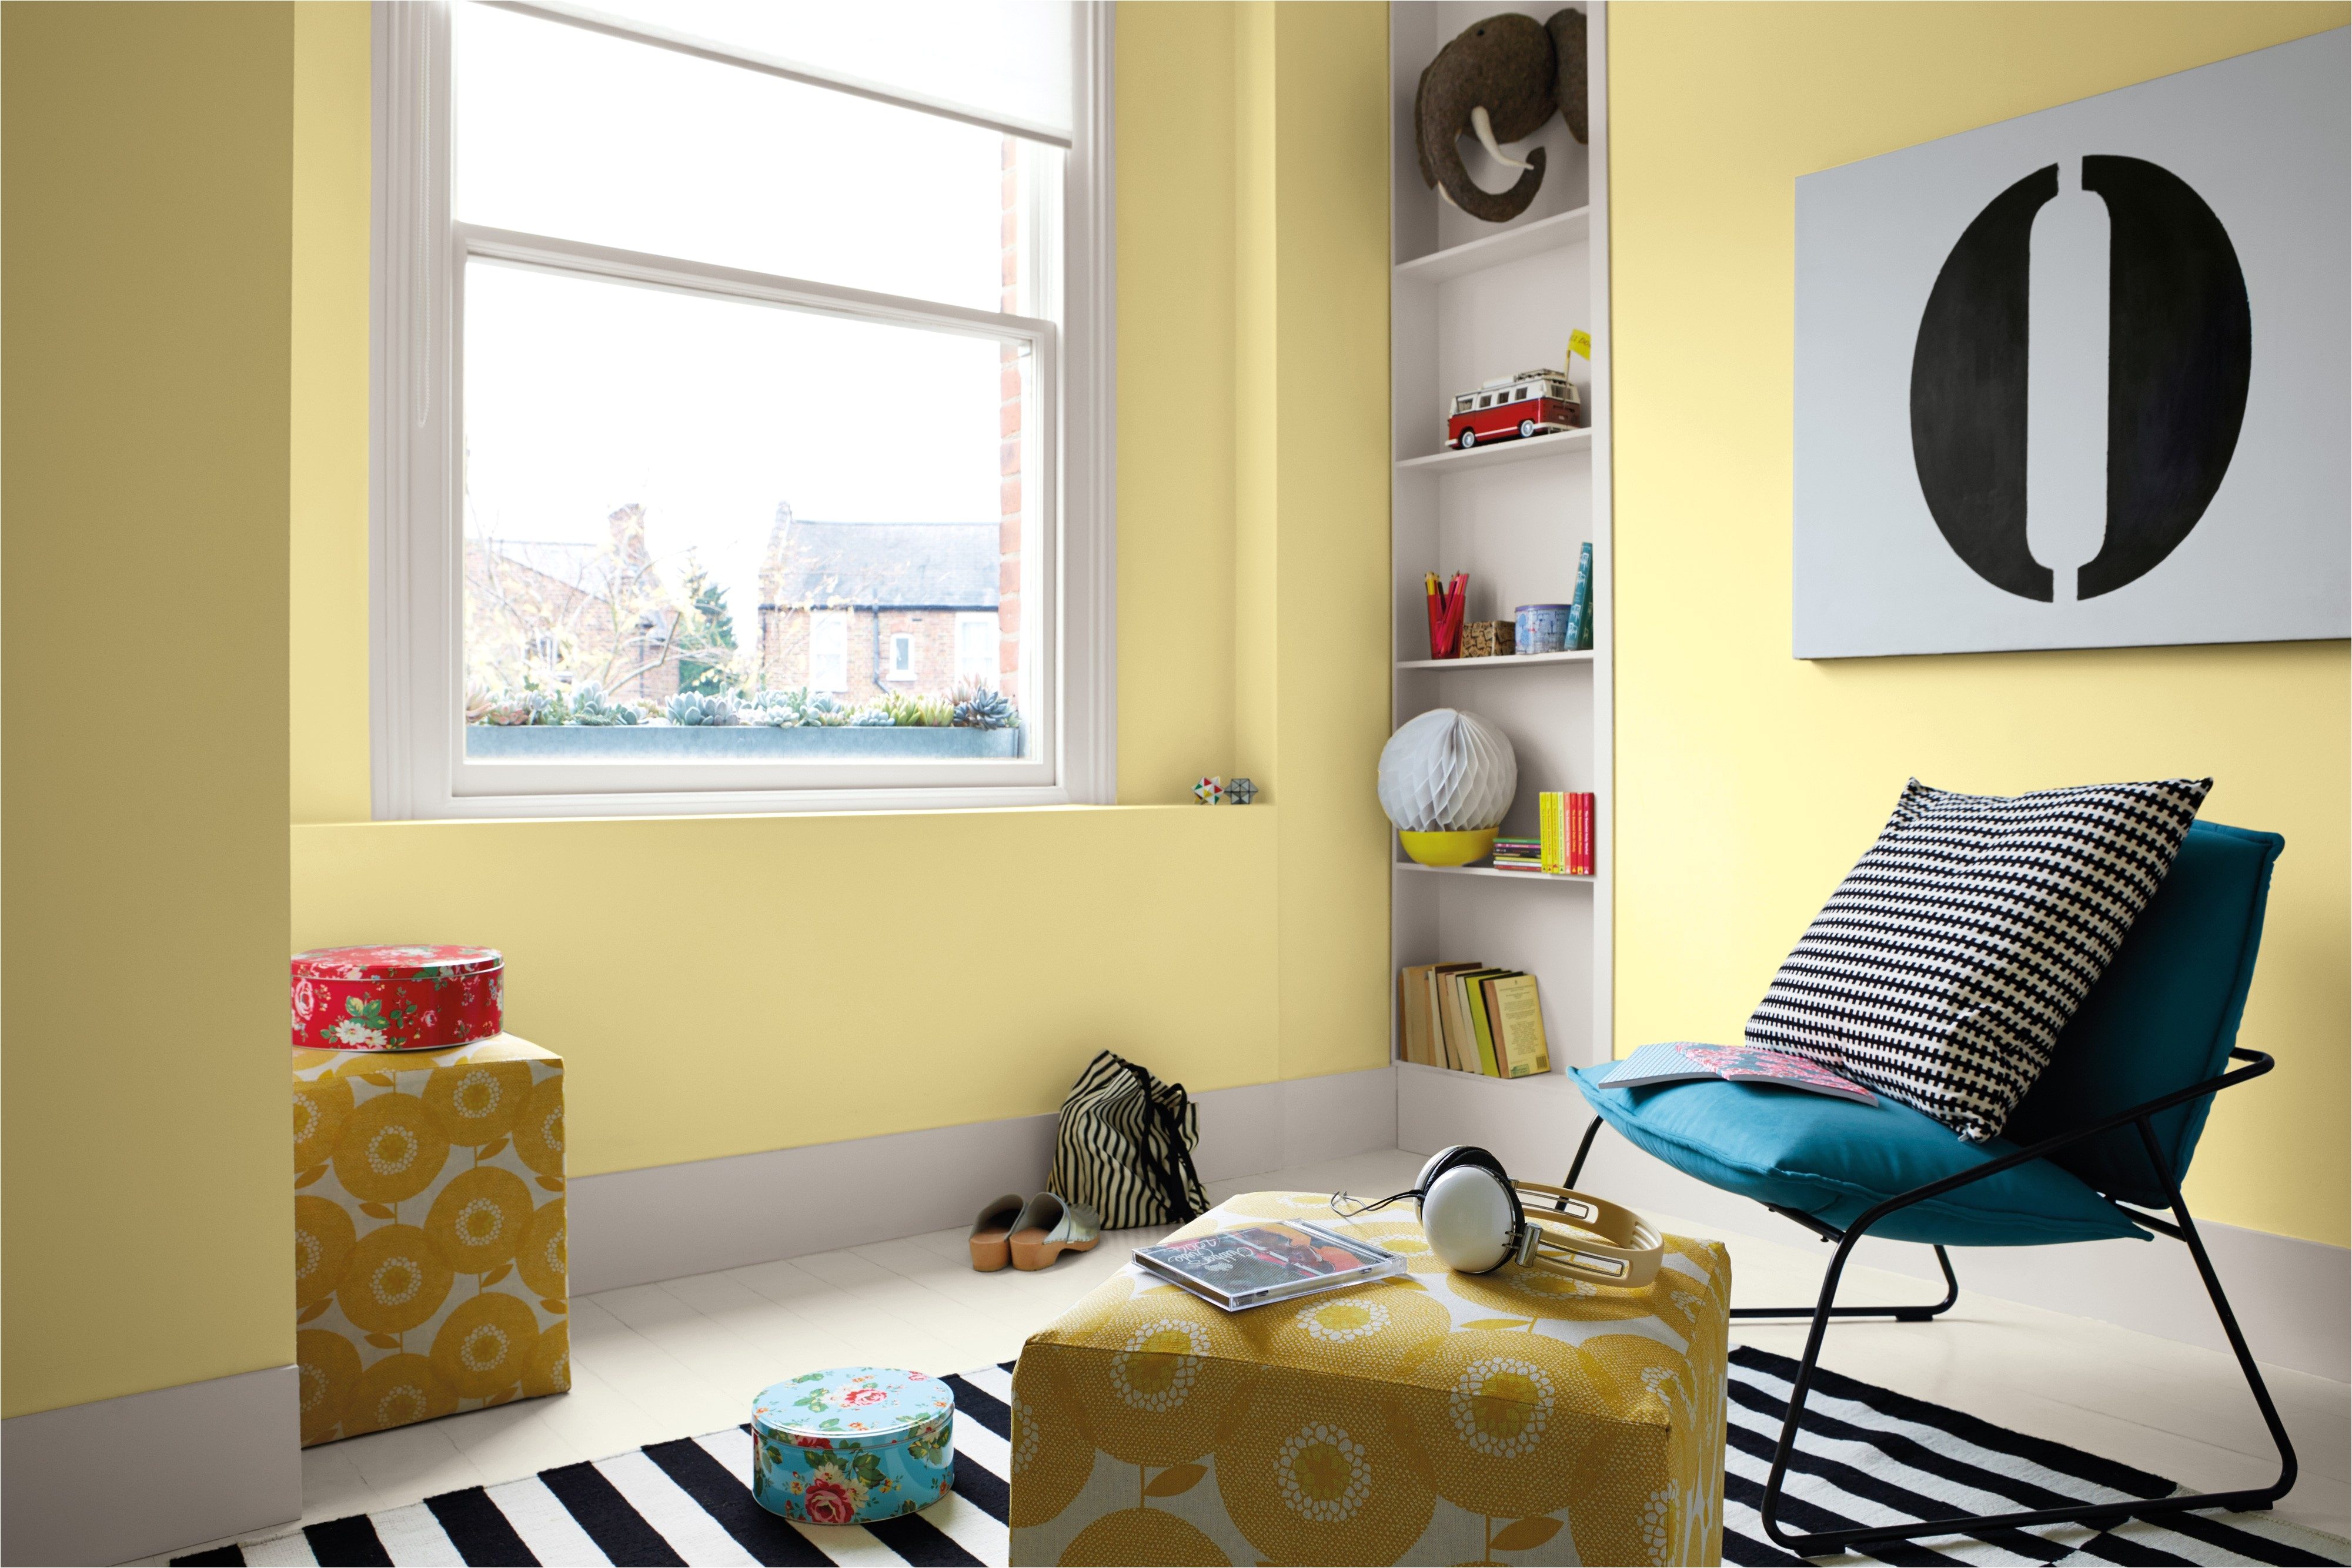 decorating ideas for yellow rooms new yellow and grey bedroom decorating ideas home design yellow and